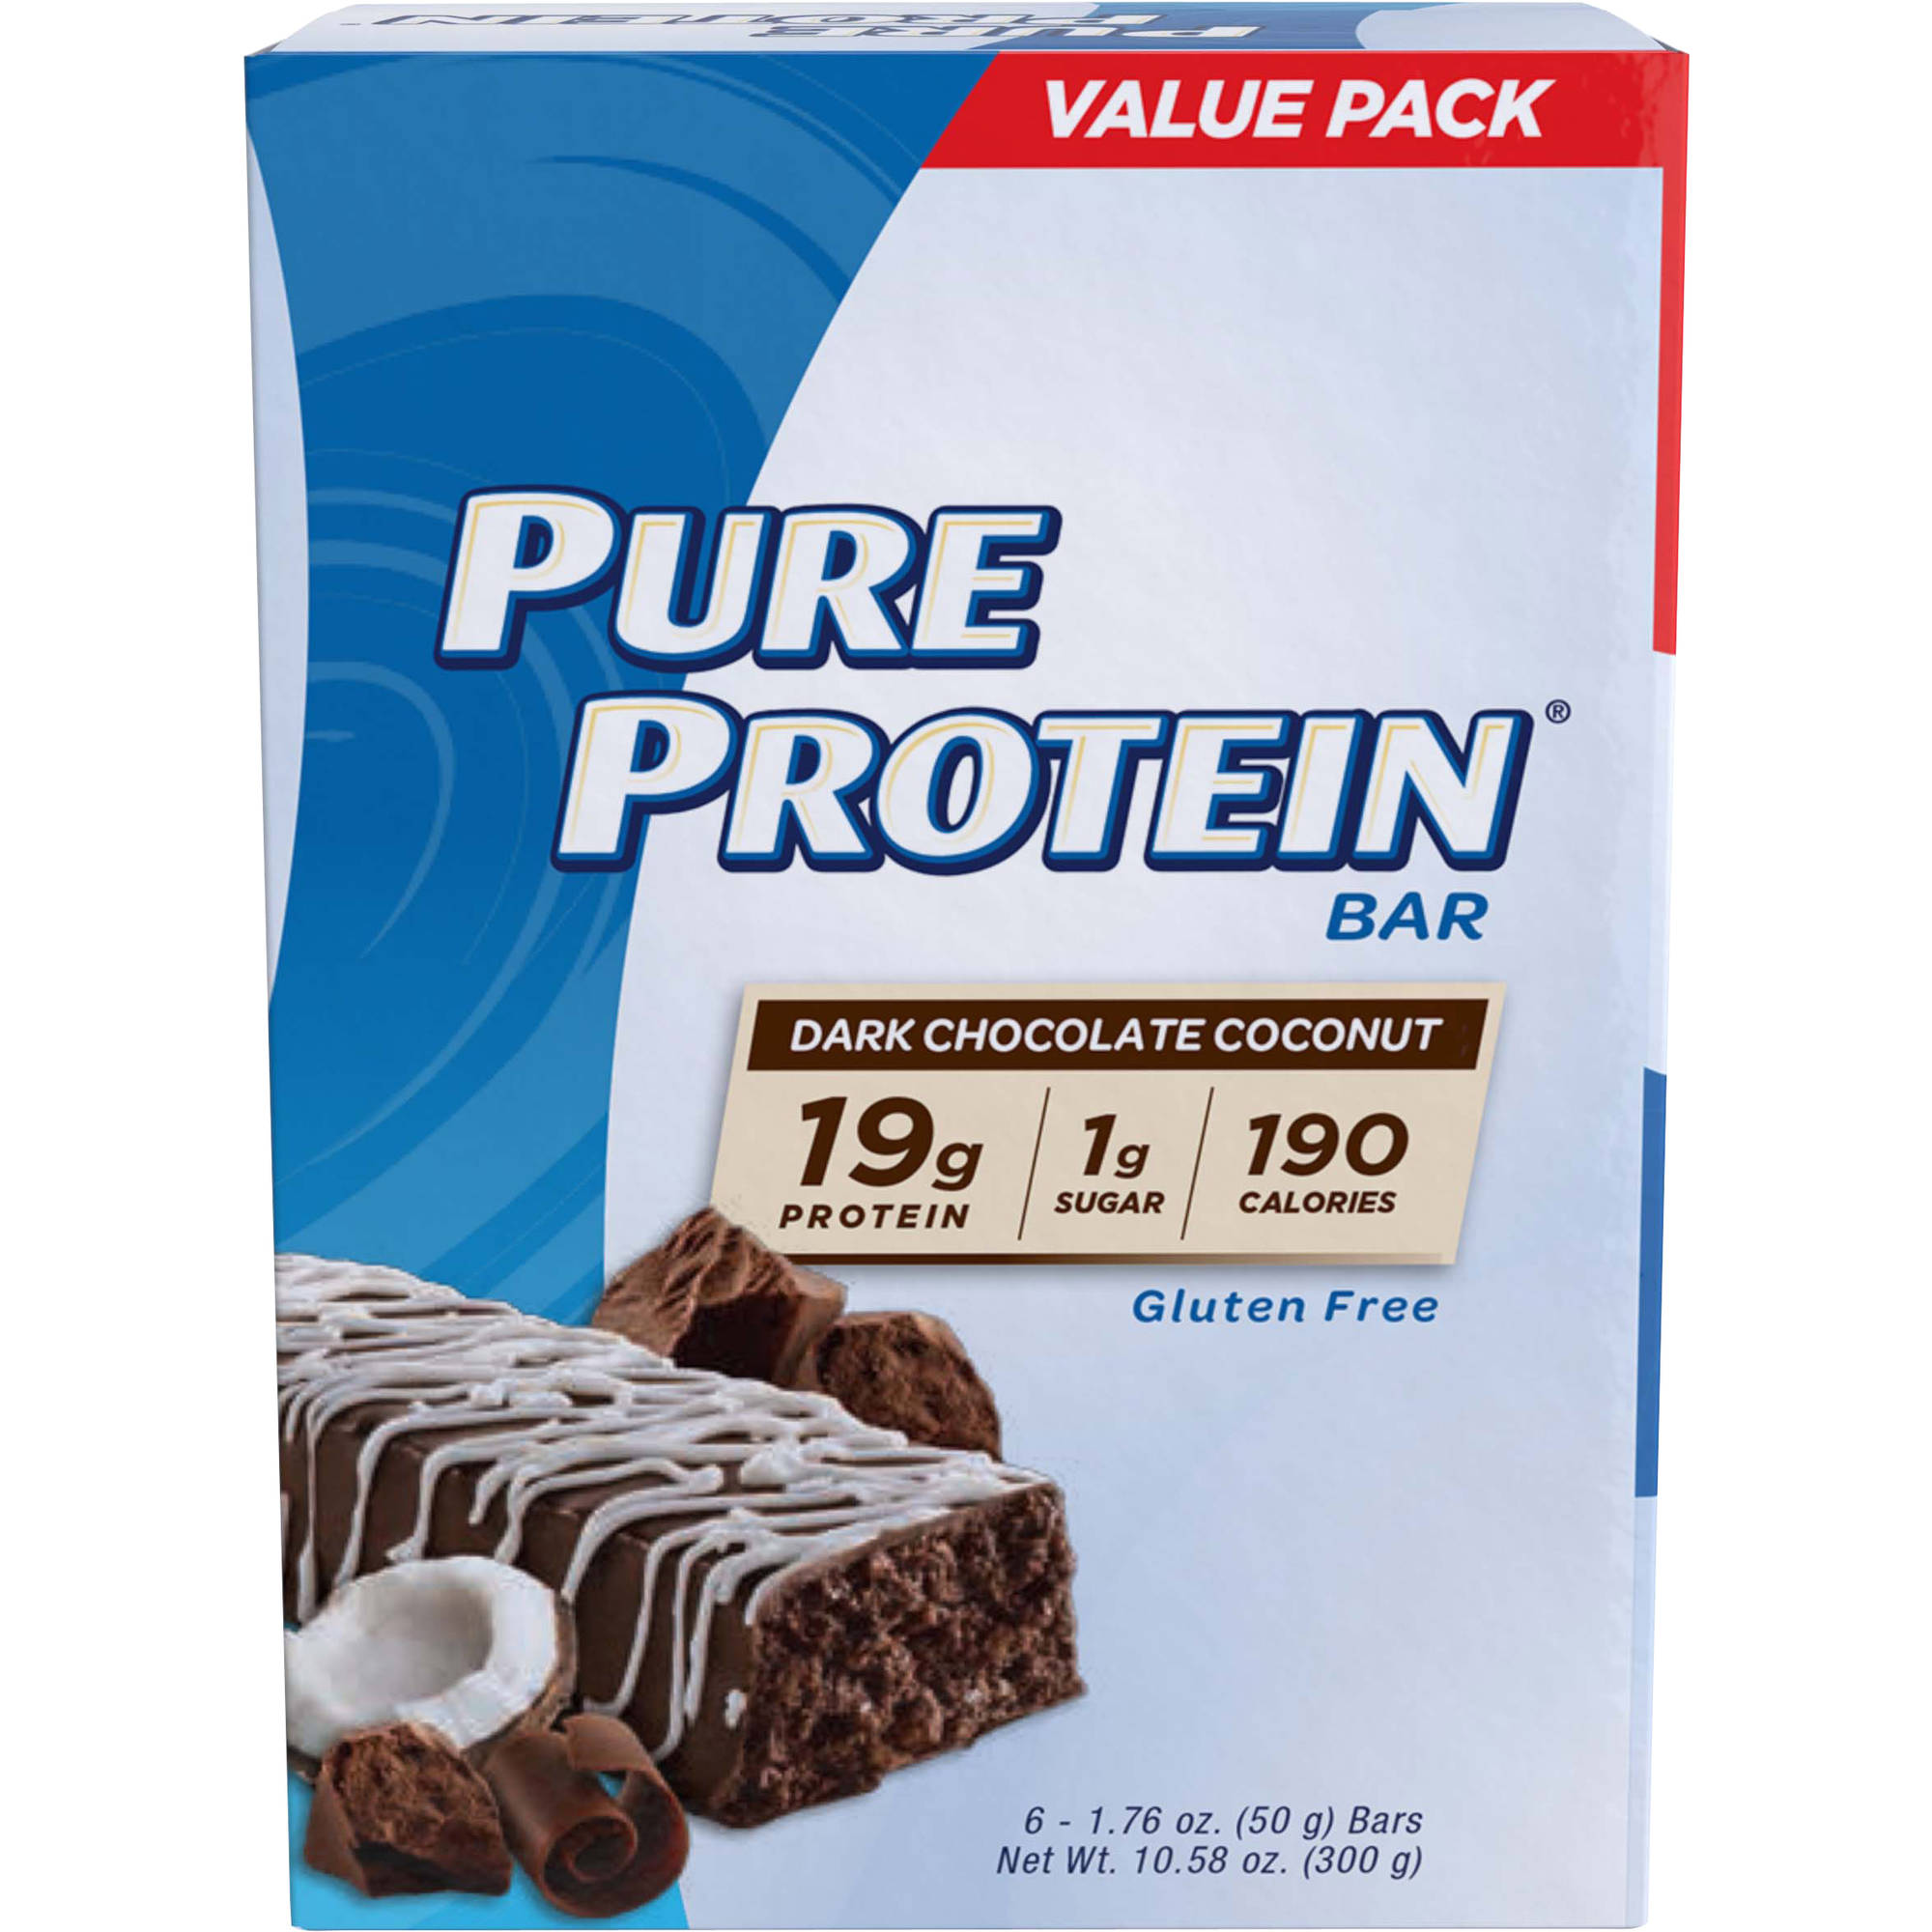 Pure Protein Dark Chocolate Coconut Protein Bars, 1.76 oz, 6 count